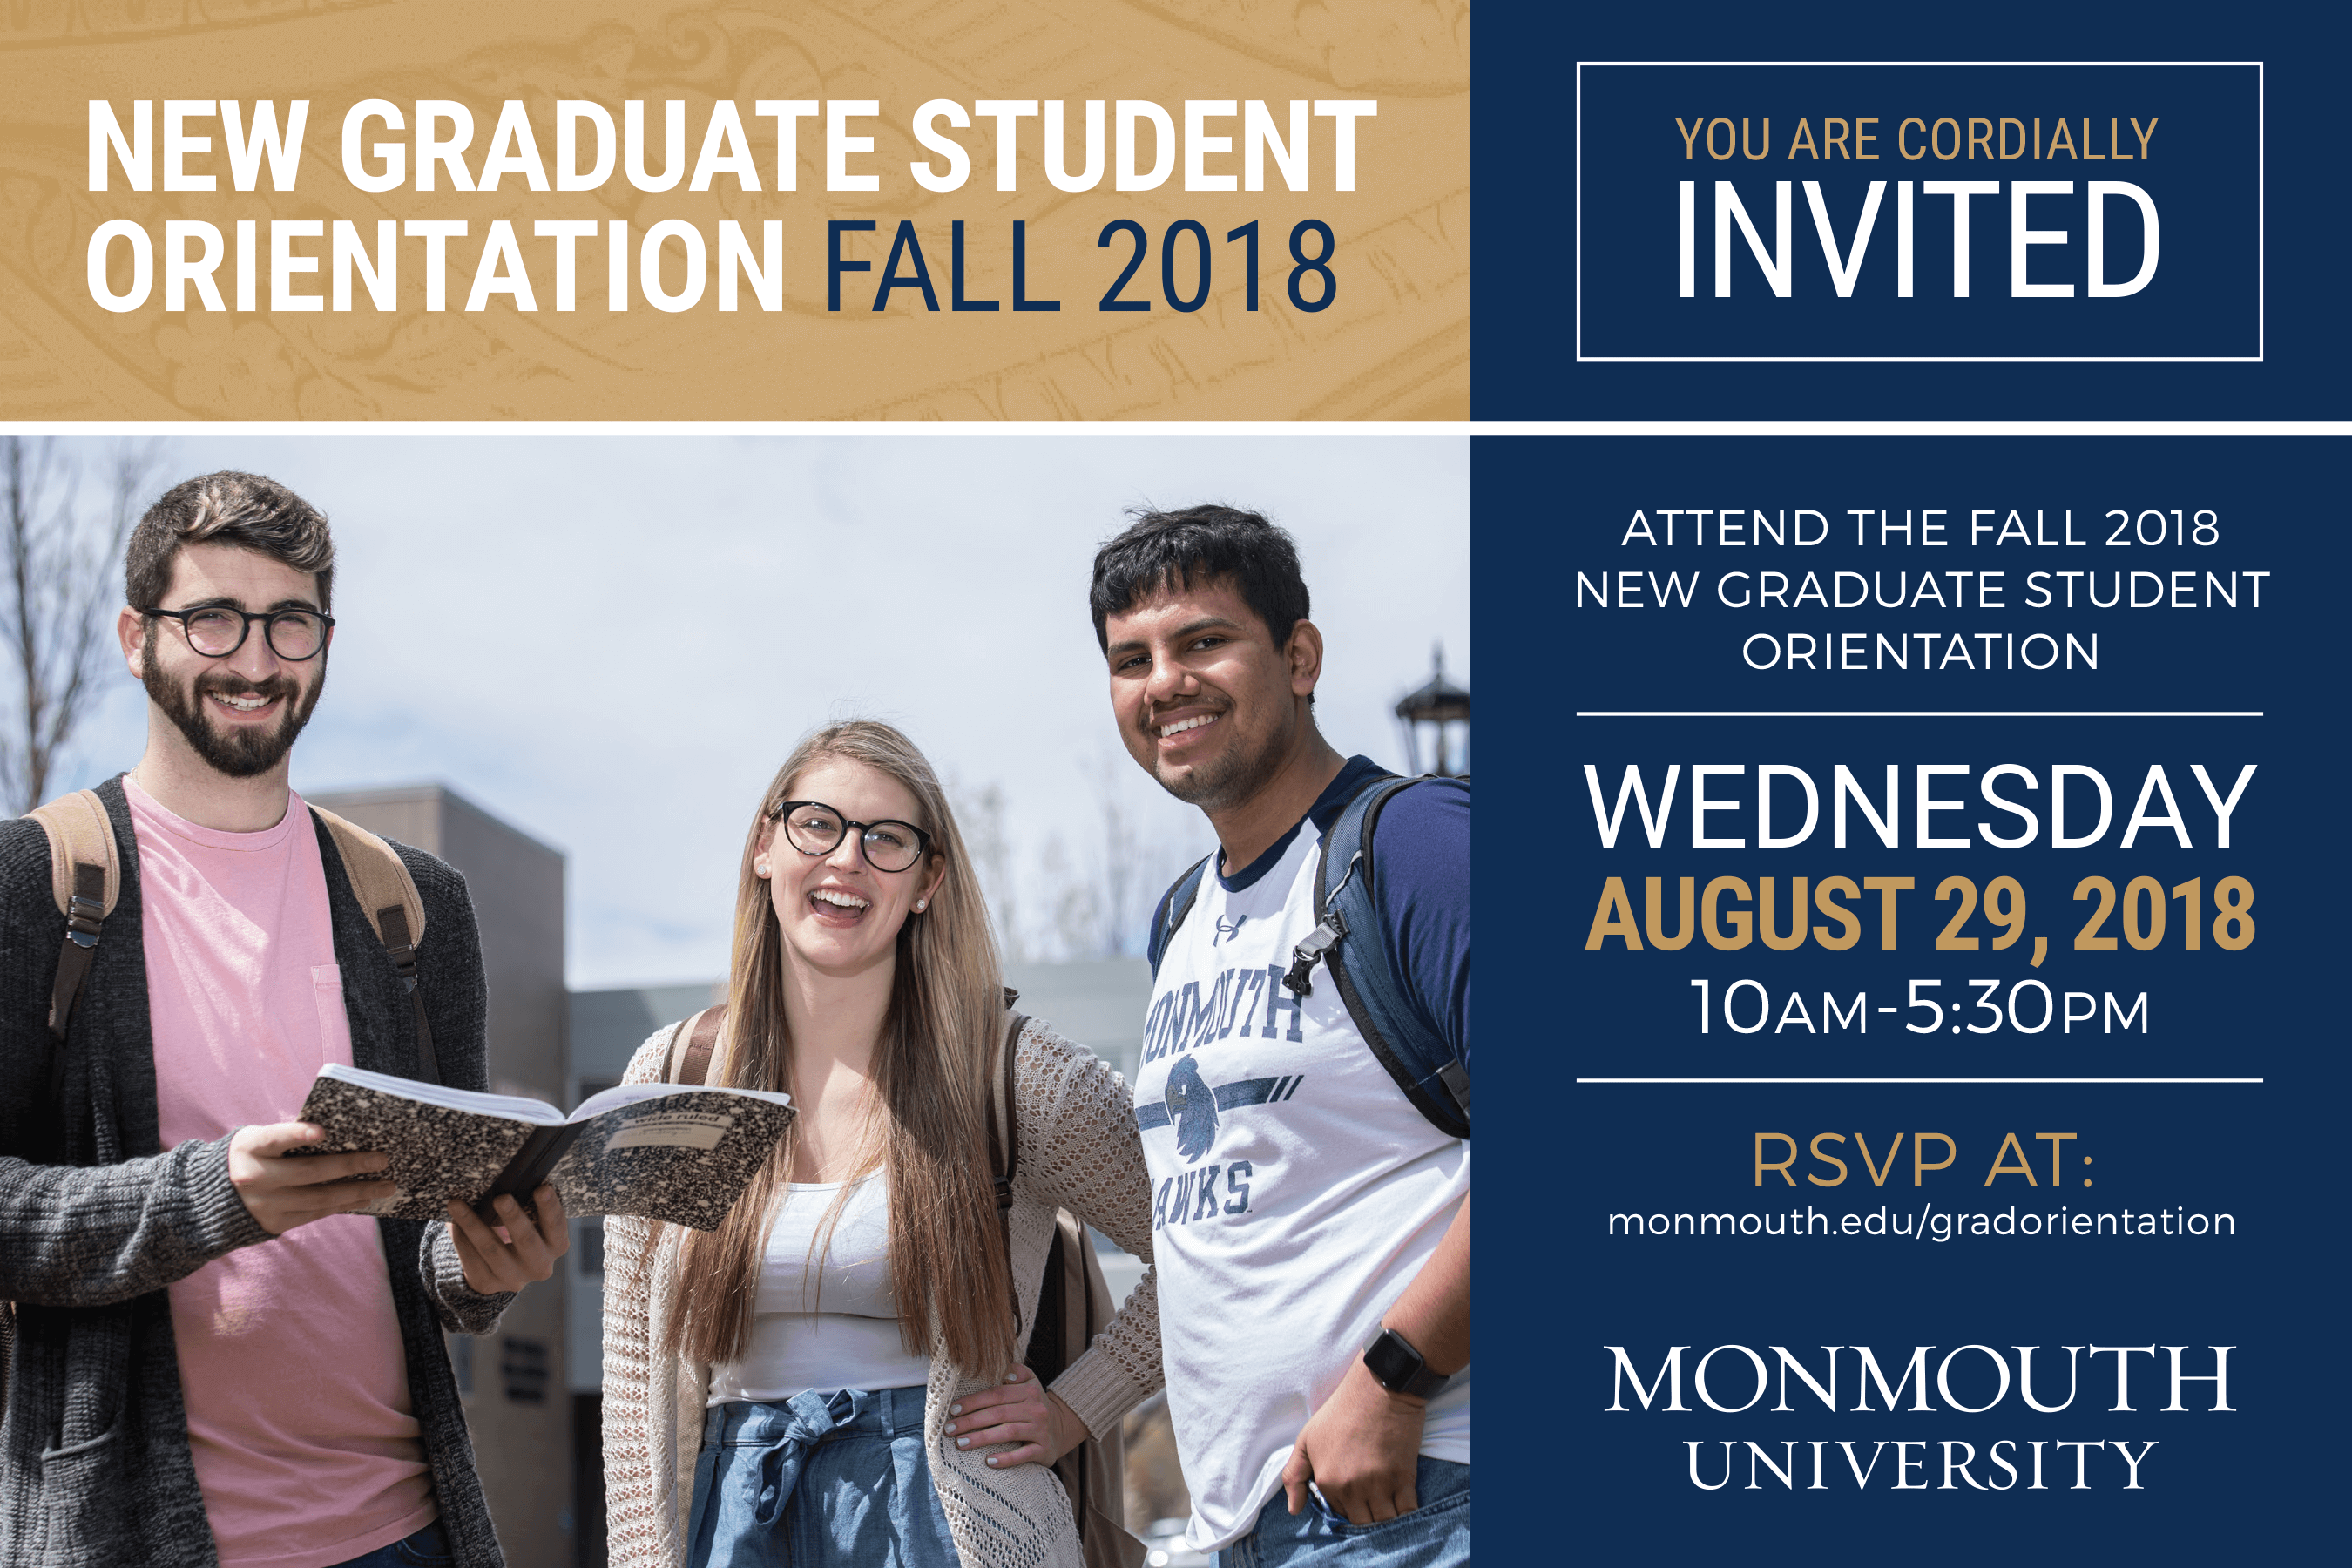 Register for the Fall 2018 Graduate Orientation, happening August 29, 2019 at Monmouth University